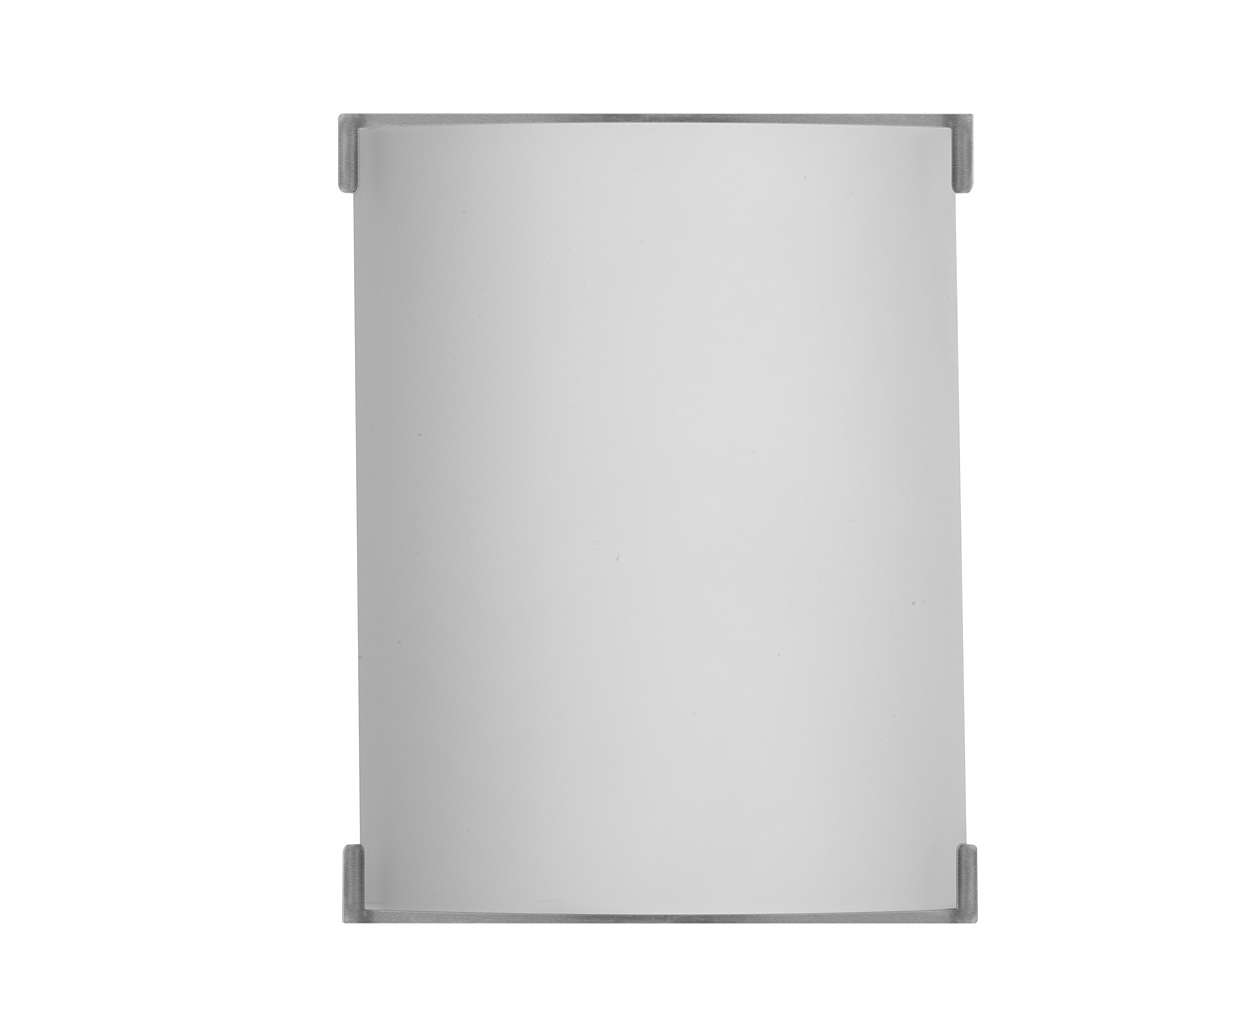 Edge 1-light Wall in Satin Nickel finish